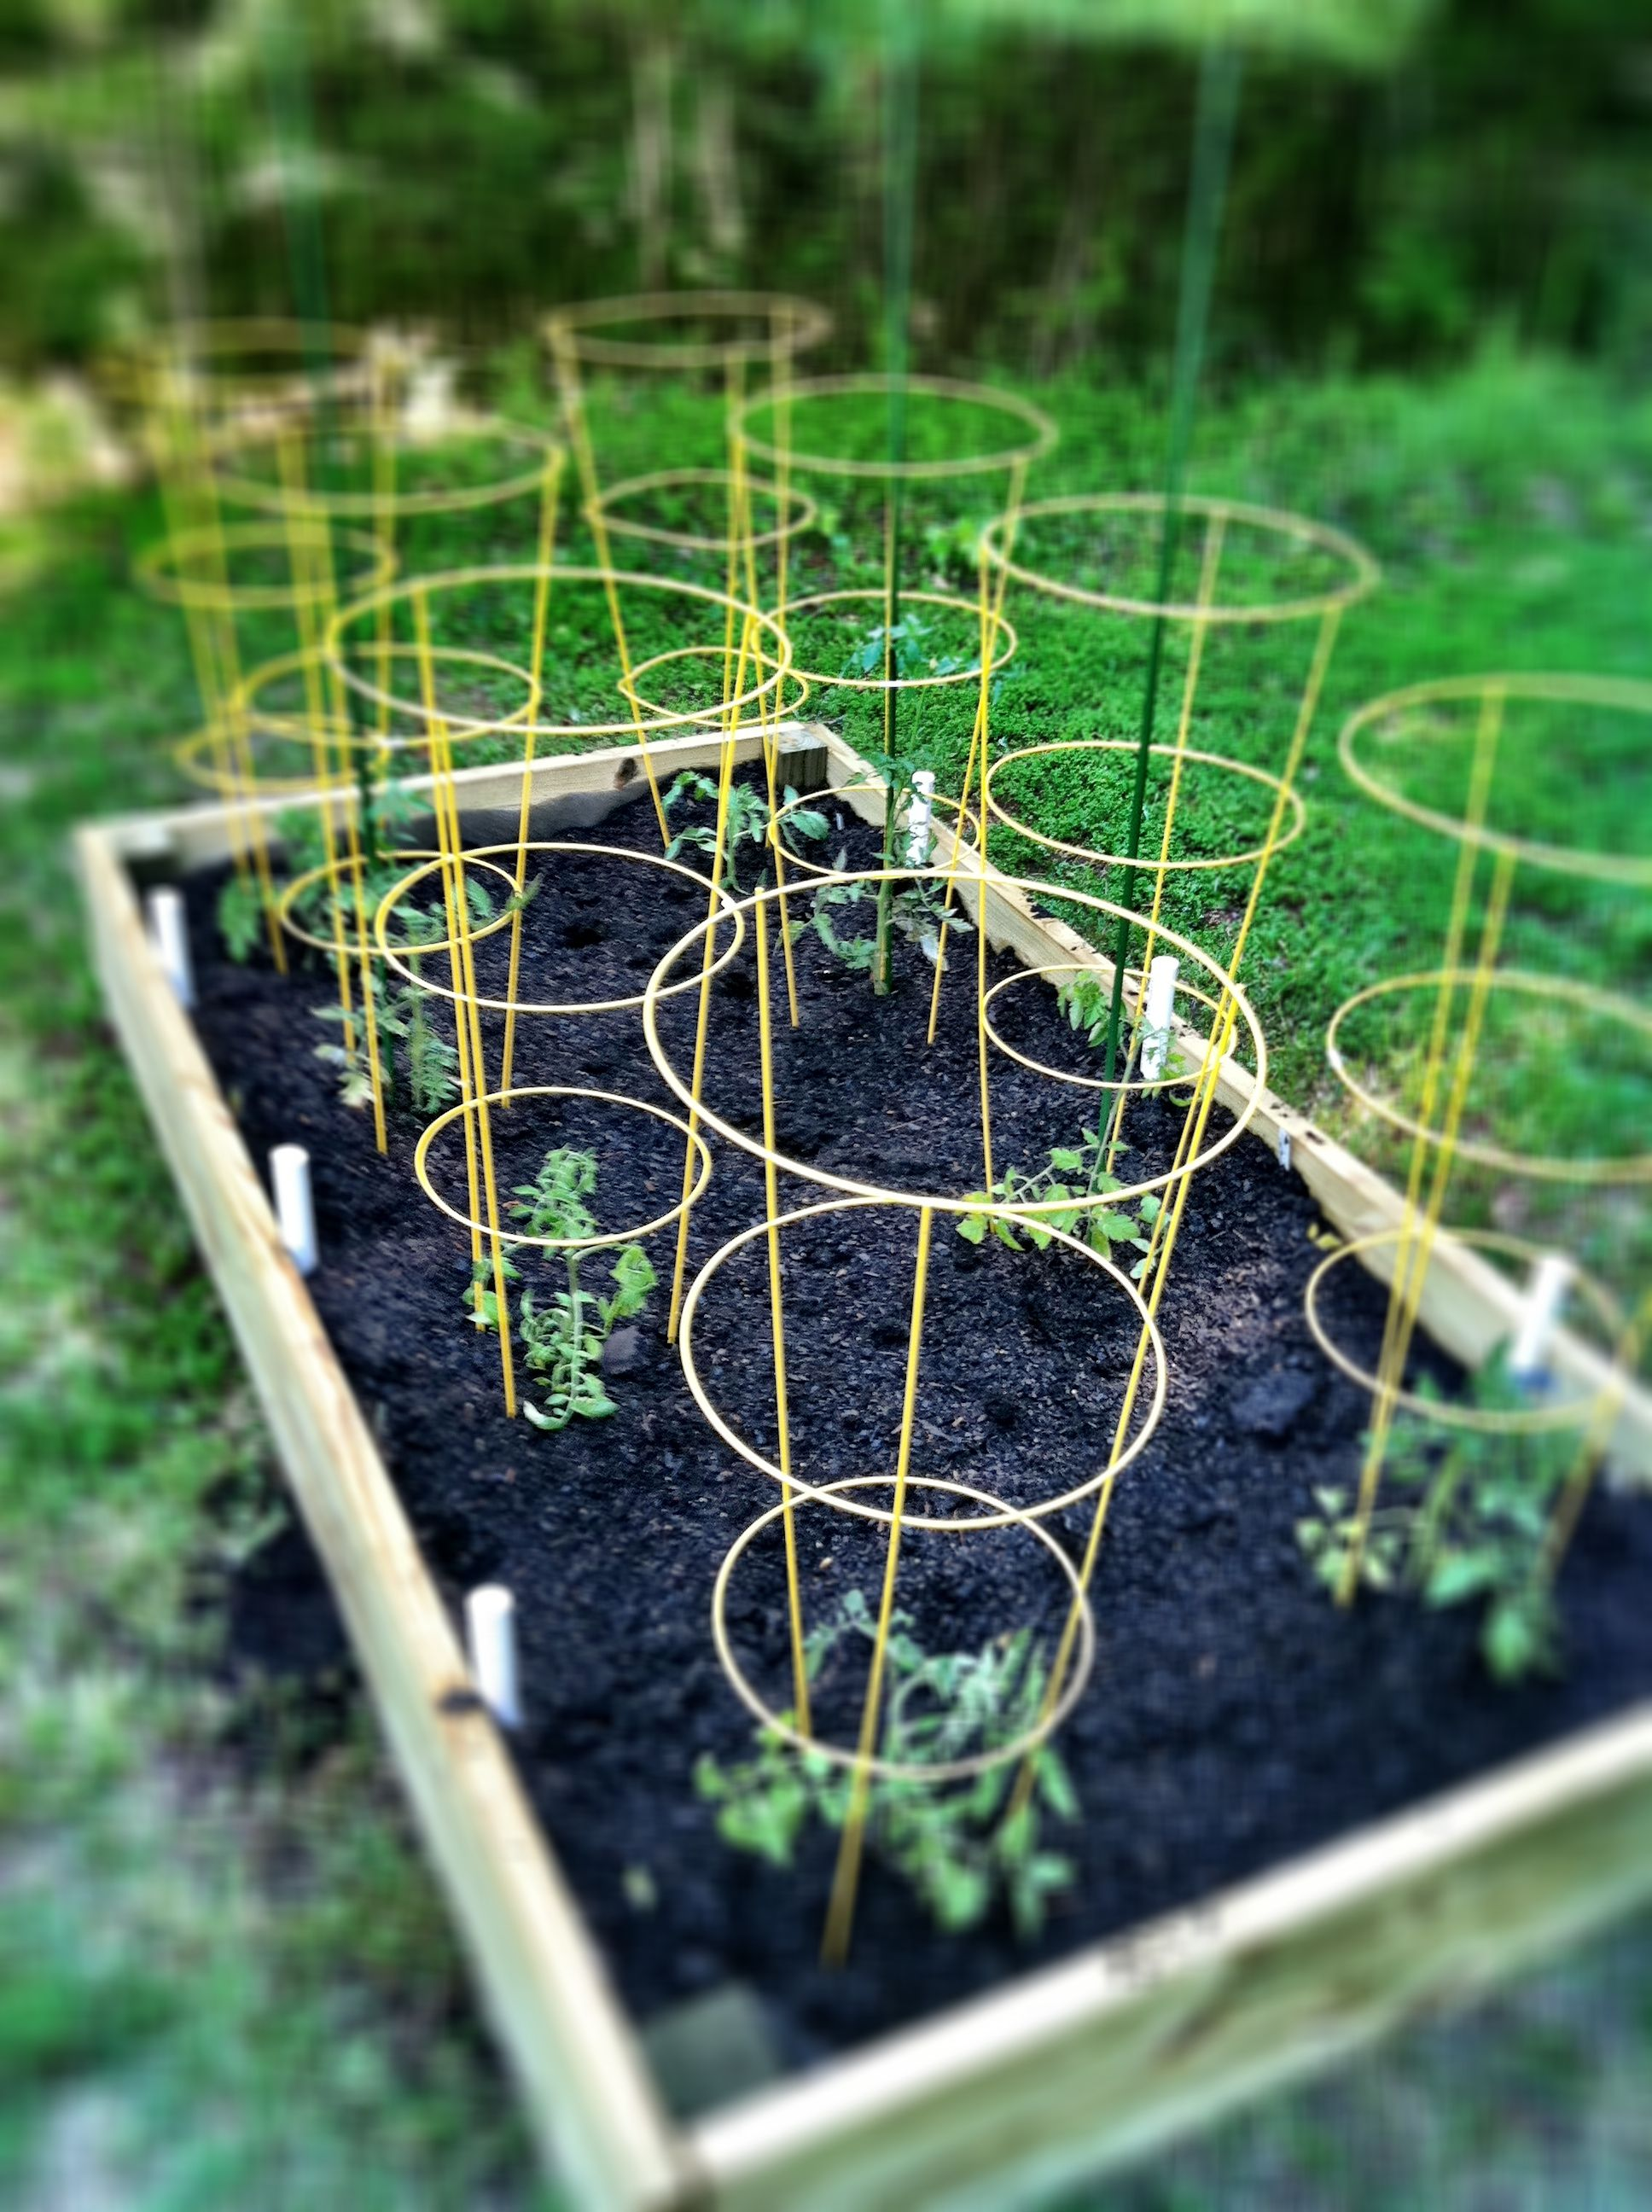 How to plant a raised garden - 17 Best Images About Raised Bed On Pinterest Gardens Raised Beds And Raised Garden Beds